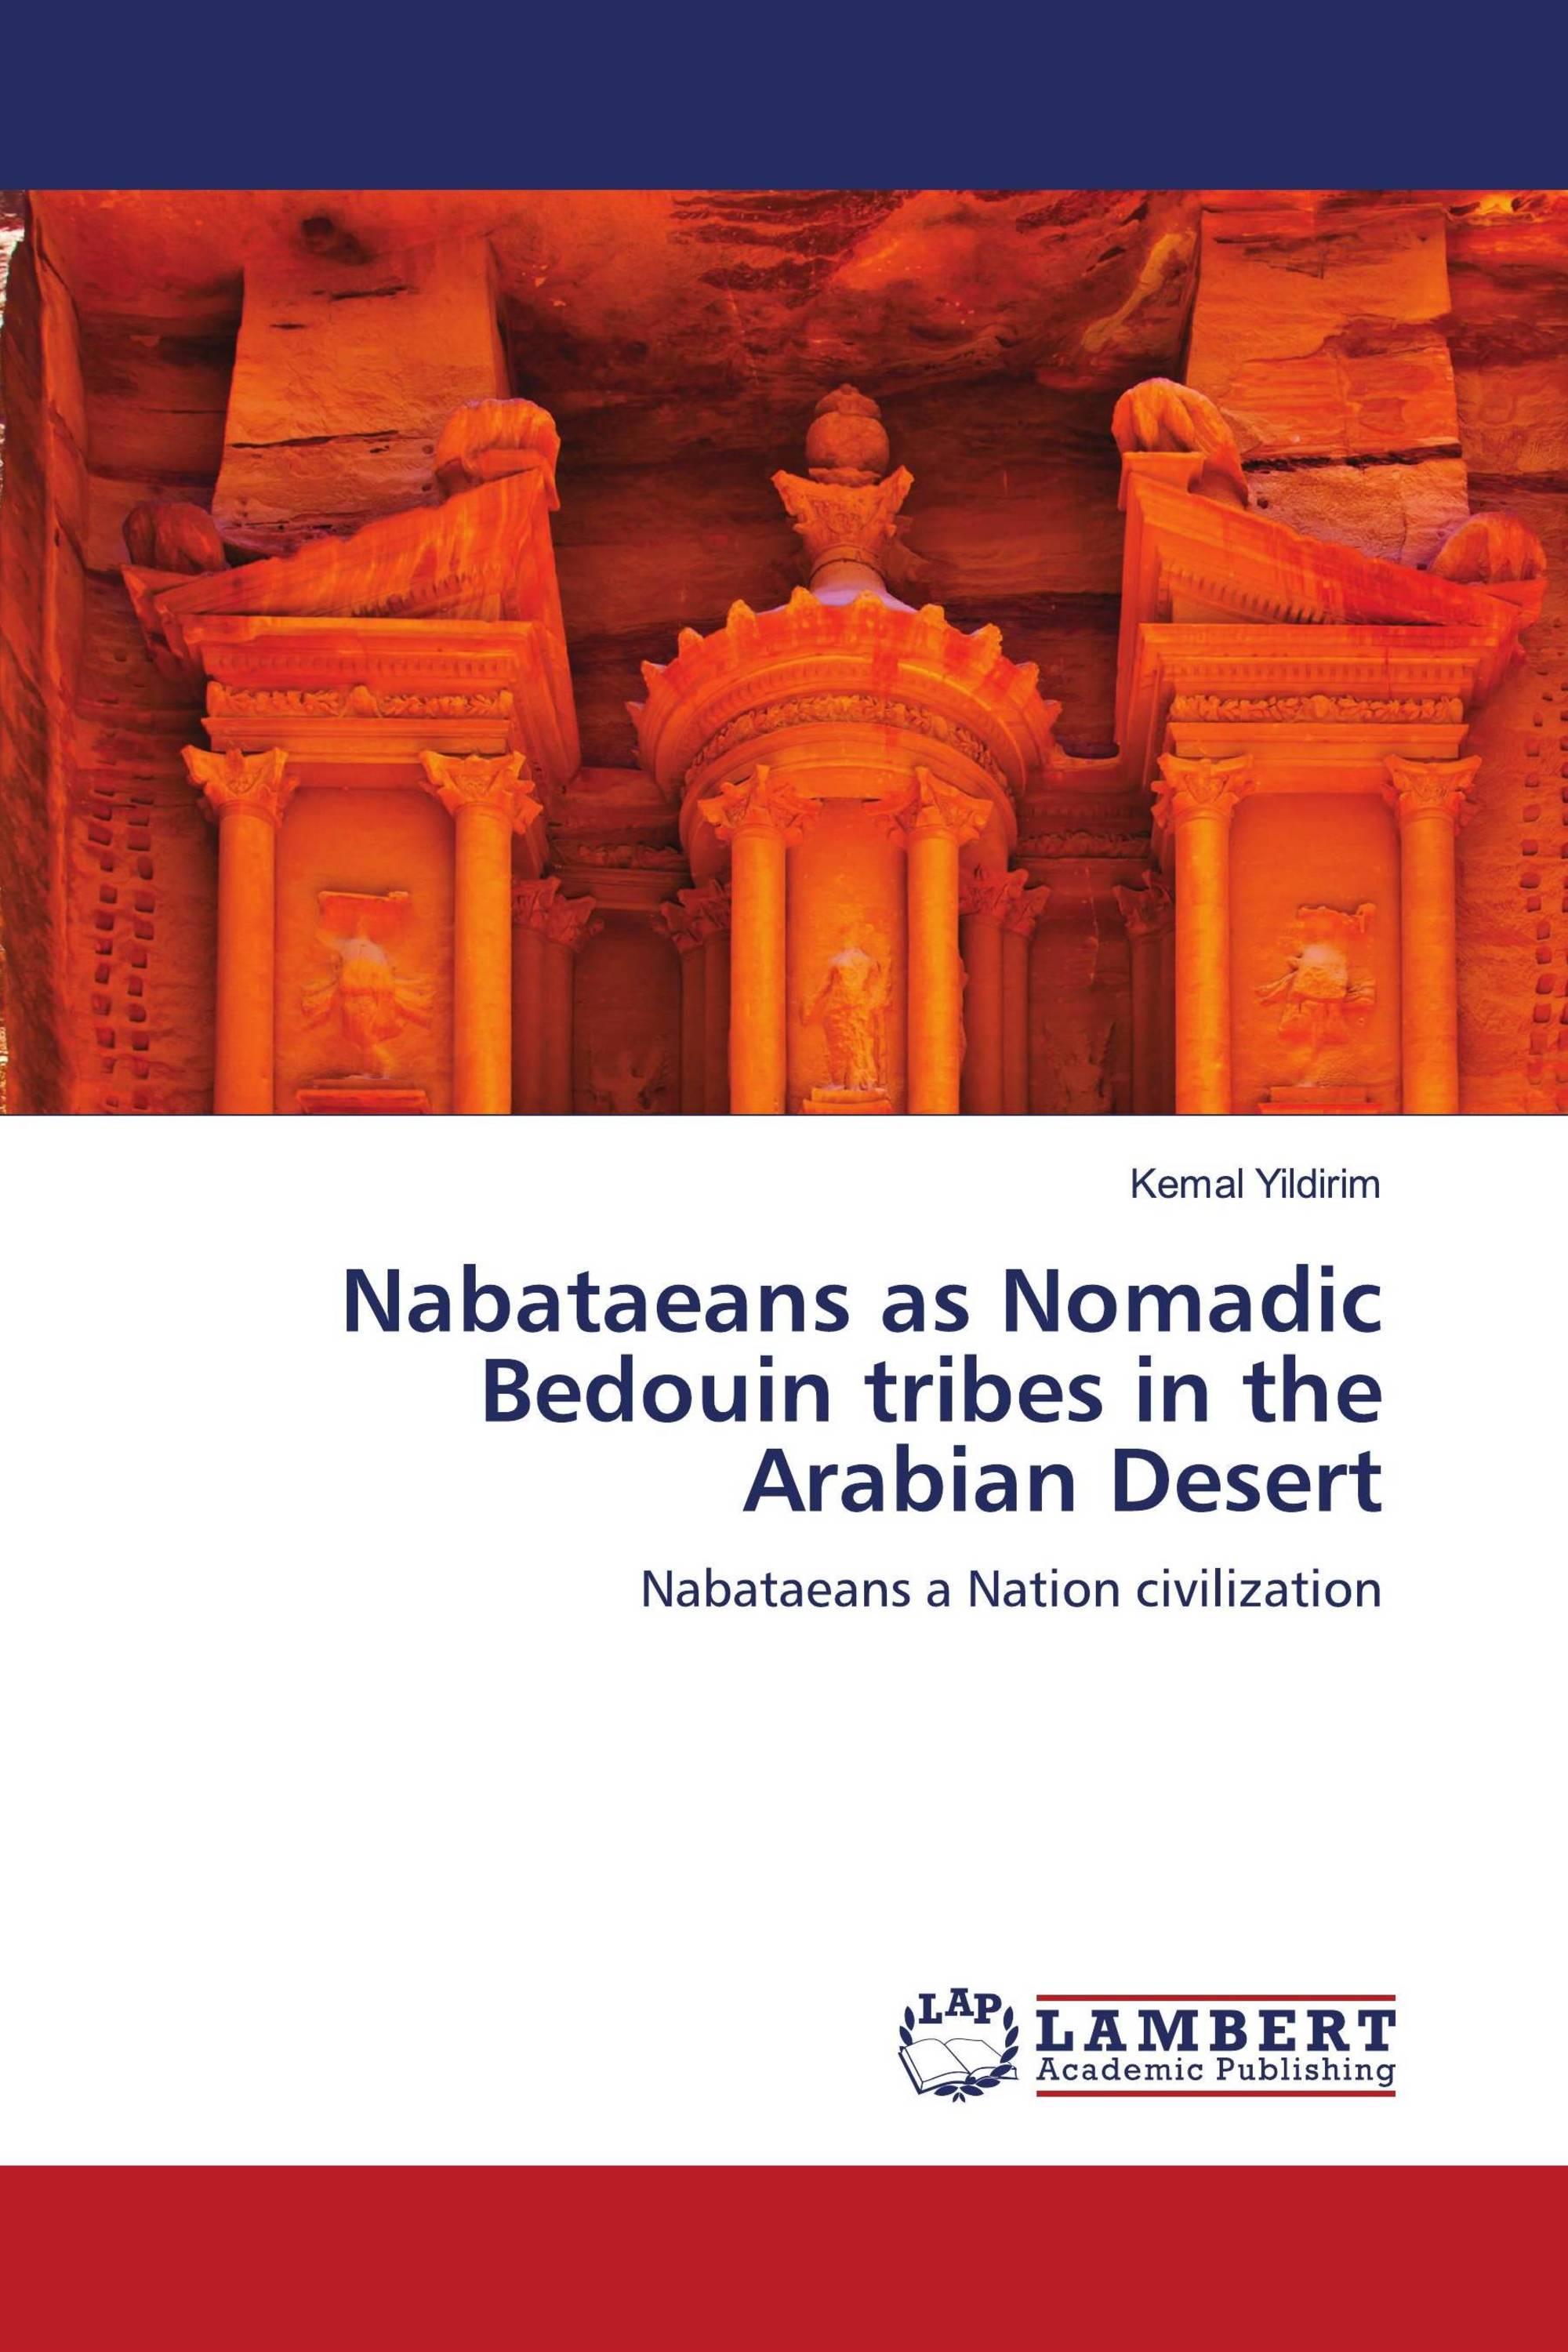 Nabataeans as Nomadic Bedouin tribes in the Arabian Desert